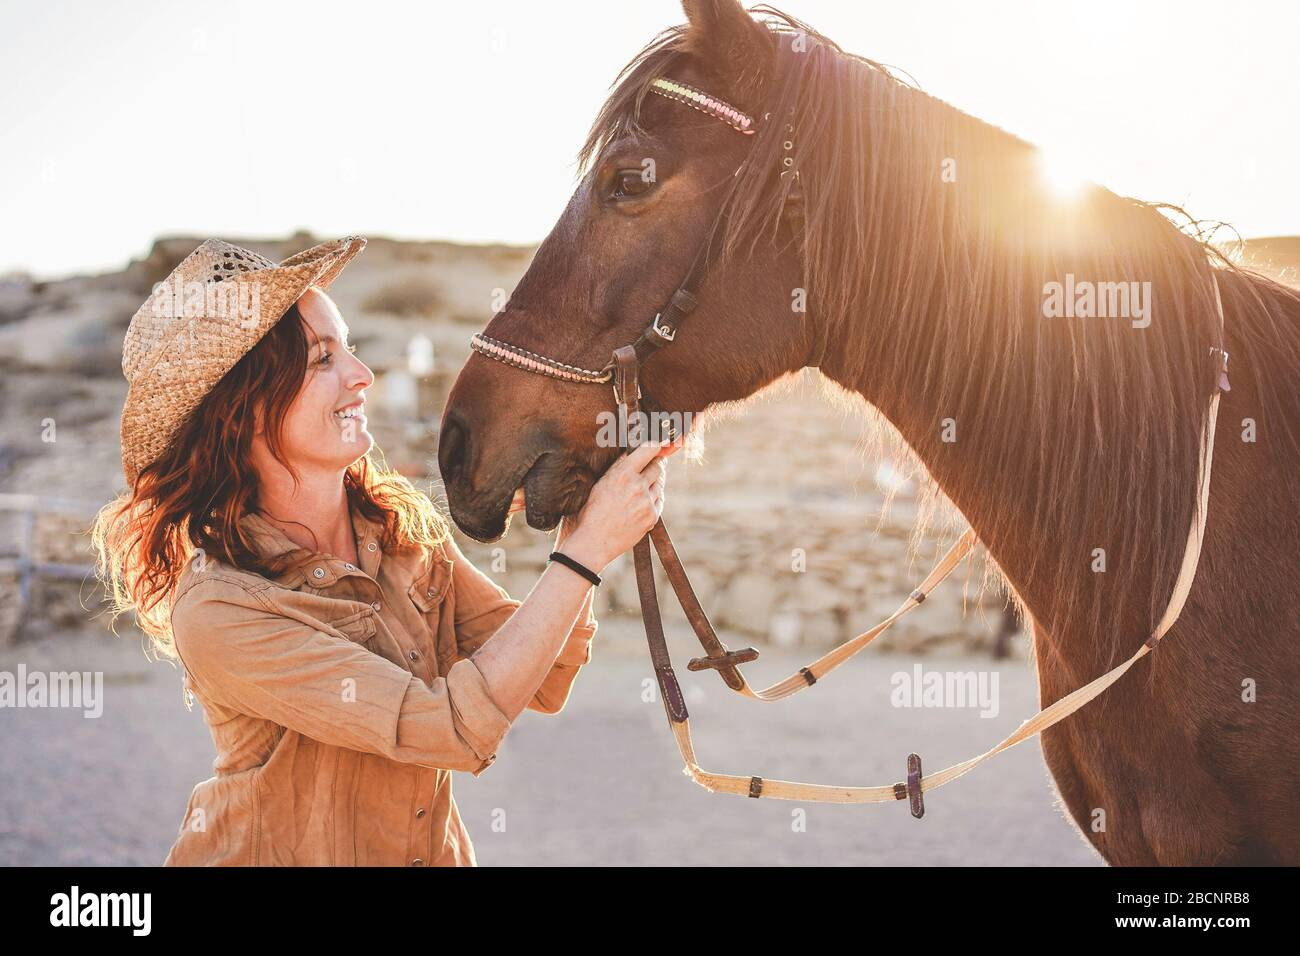 Young farmer woman playing with her bitless horse in a sunny day inside corral ranch - Concept about love between people and animals - Focus on girl f Stock Photo